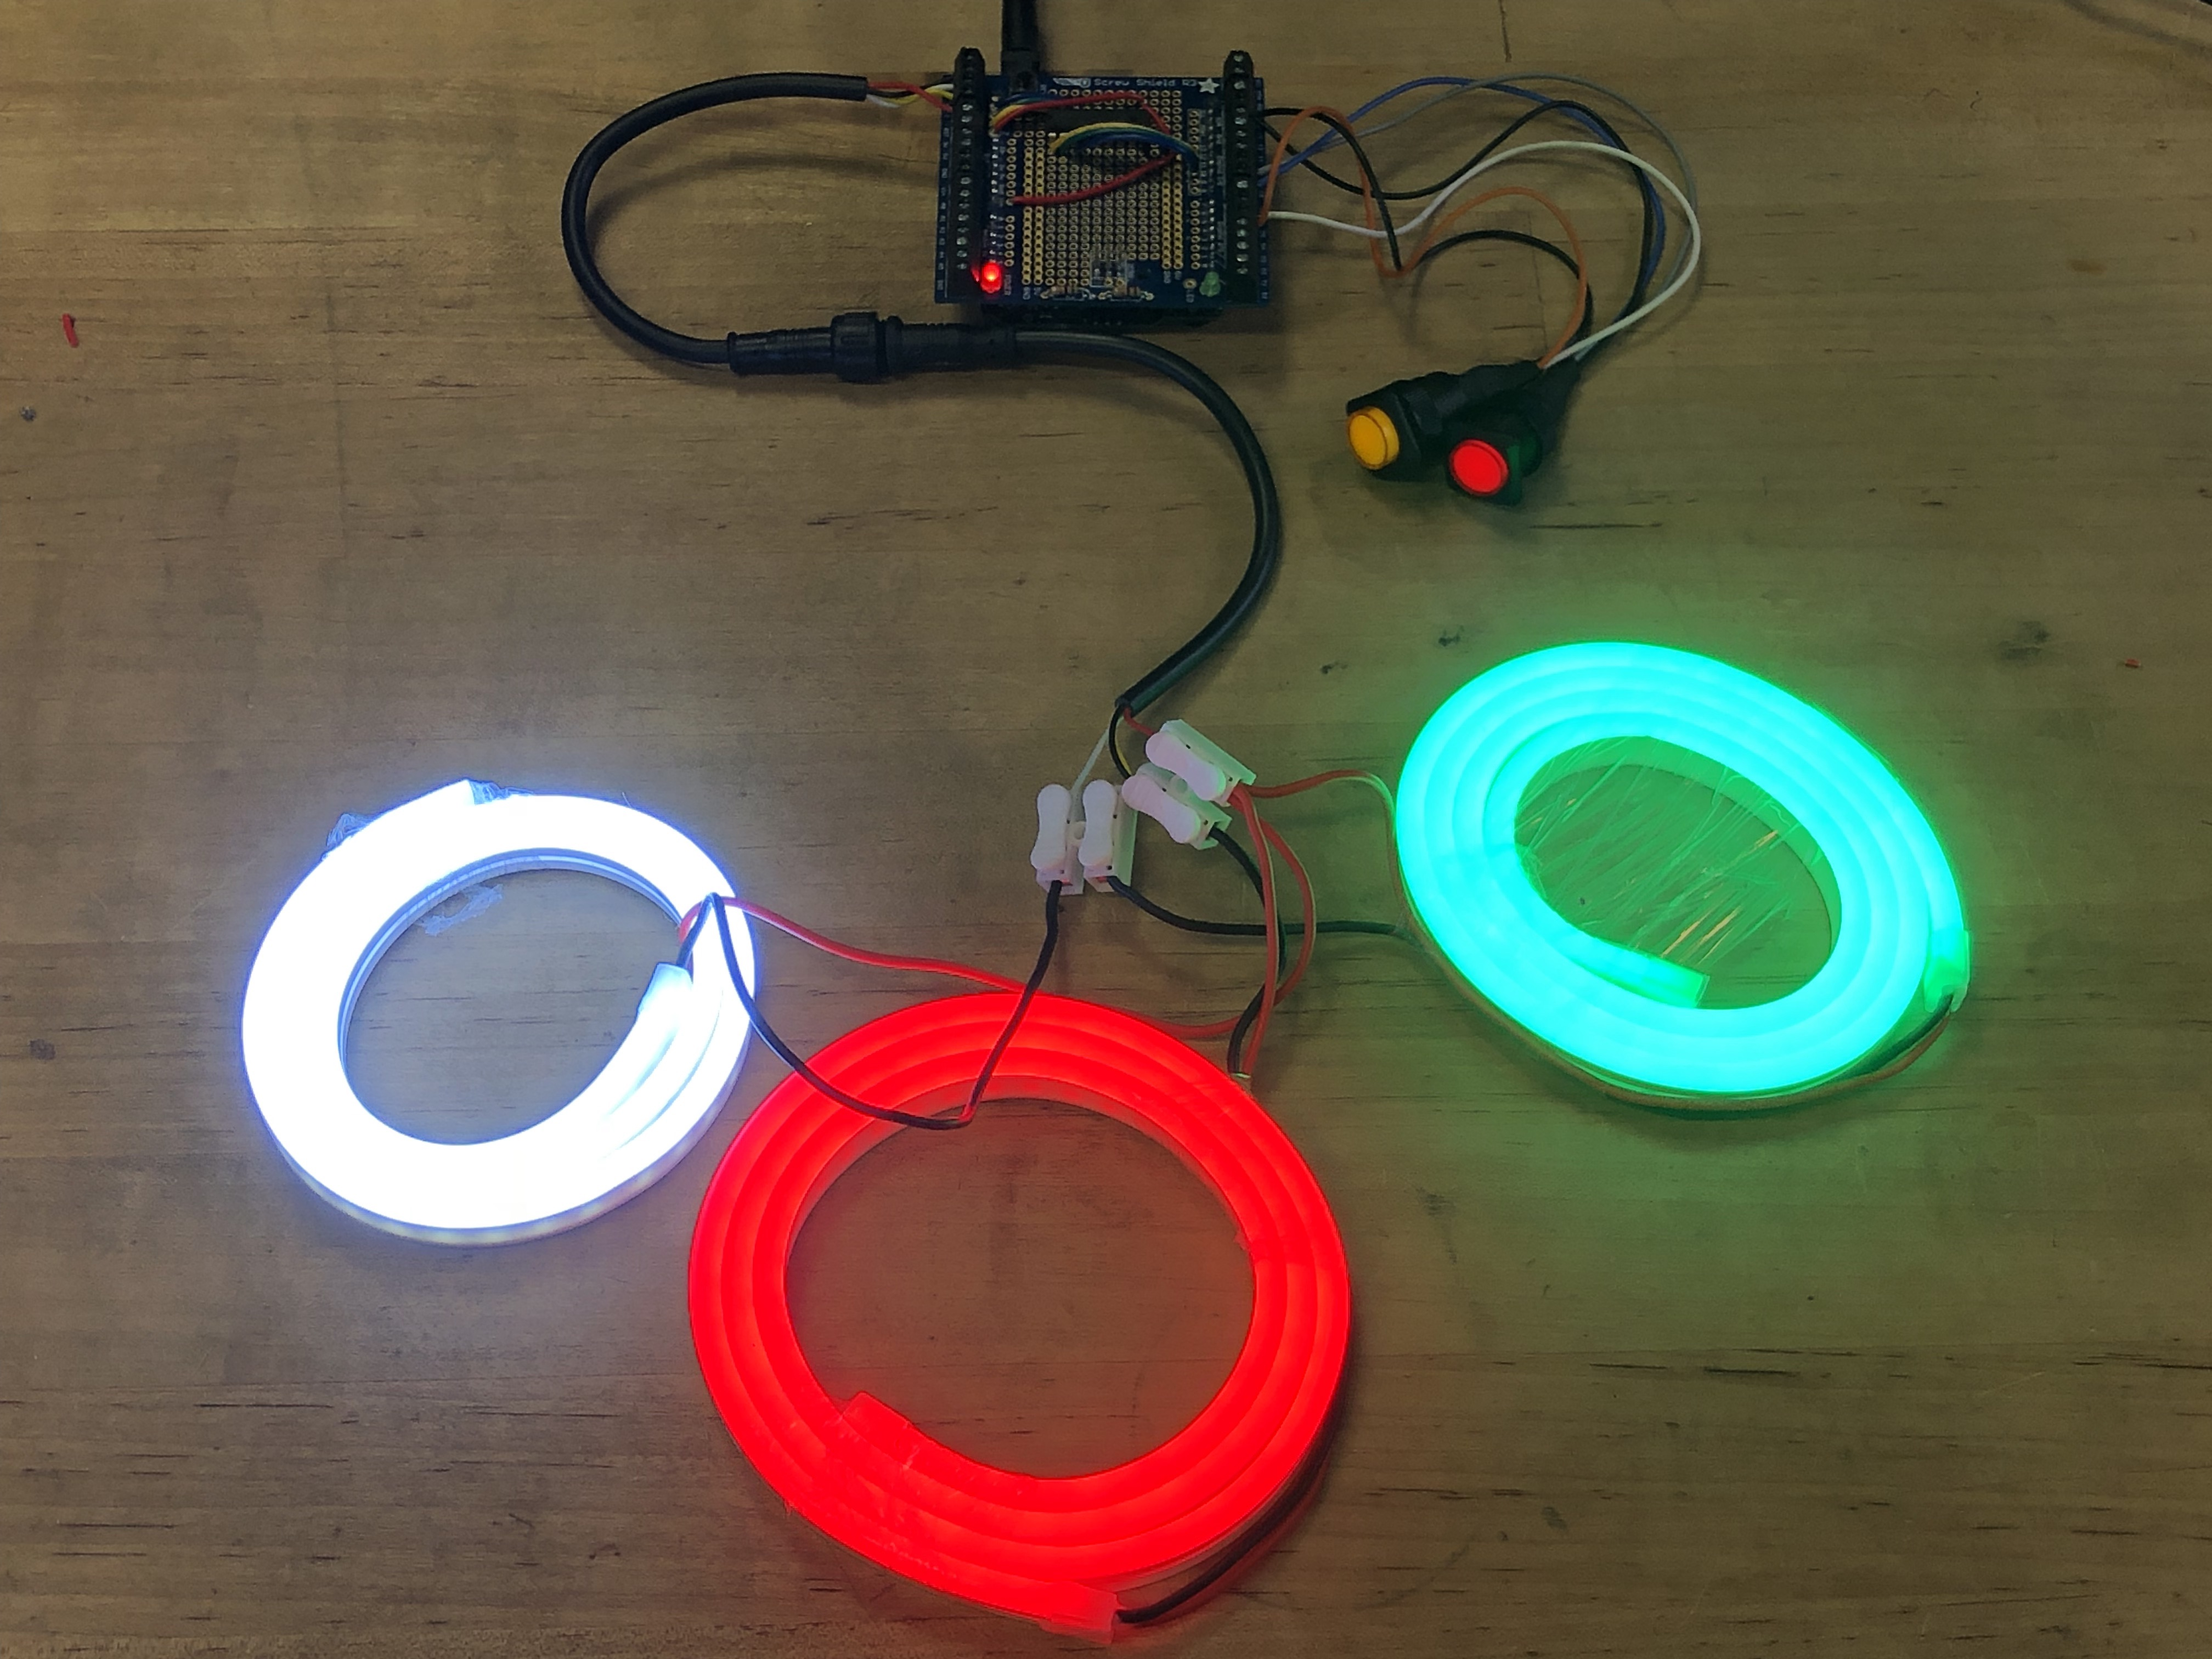 led_strips_IMG_0269.jpg